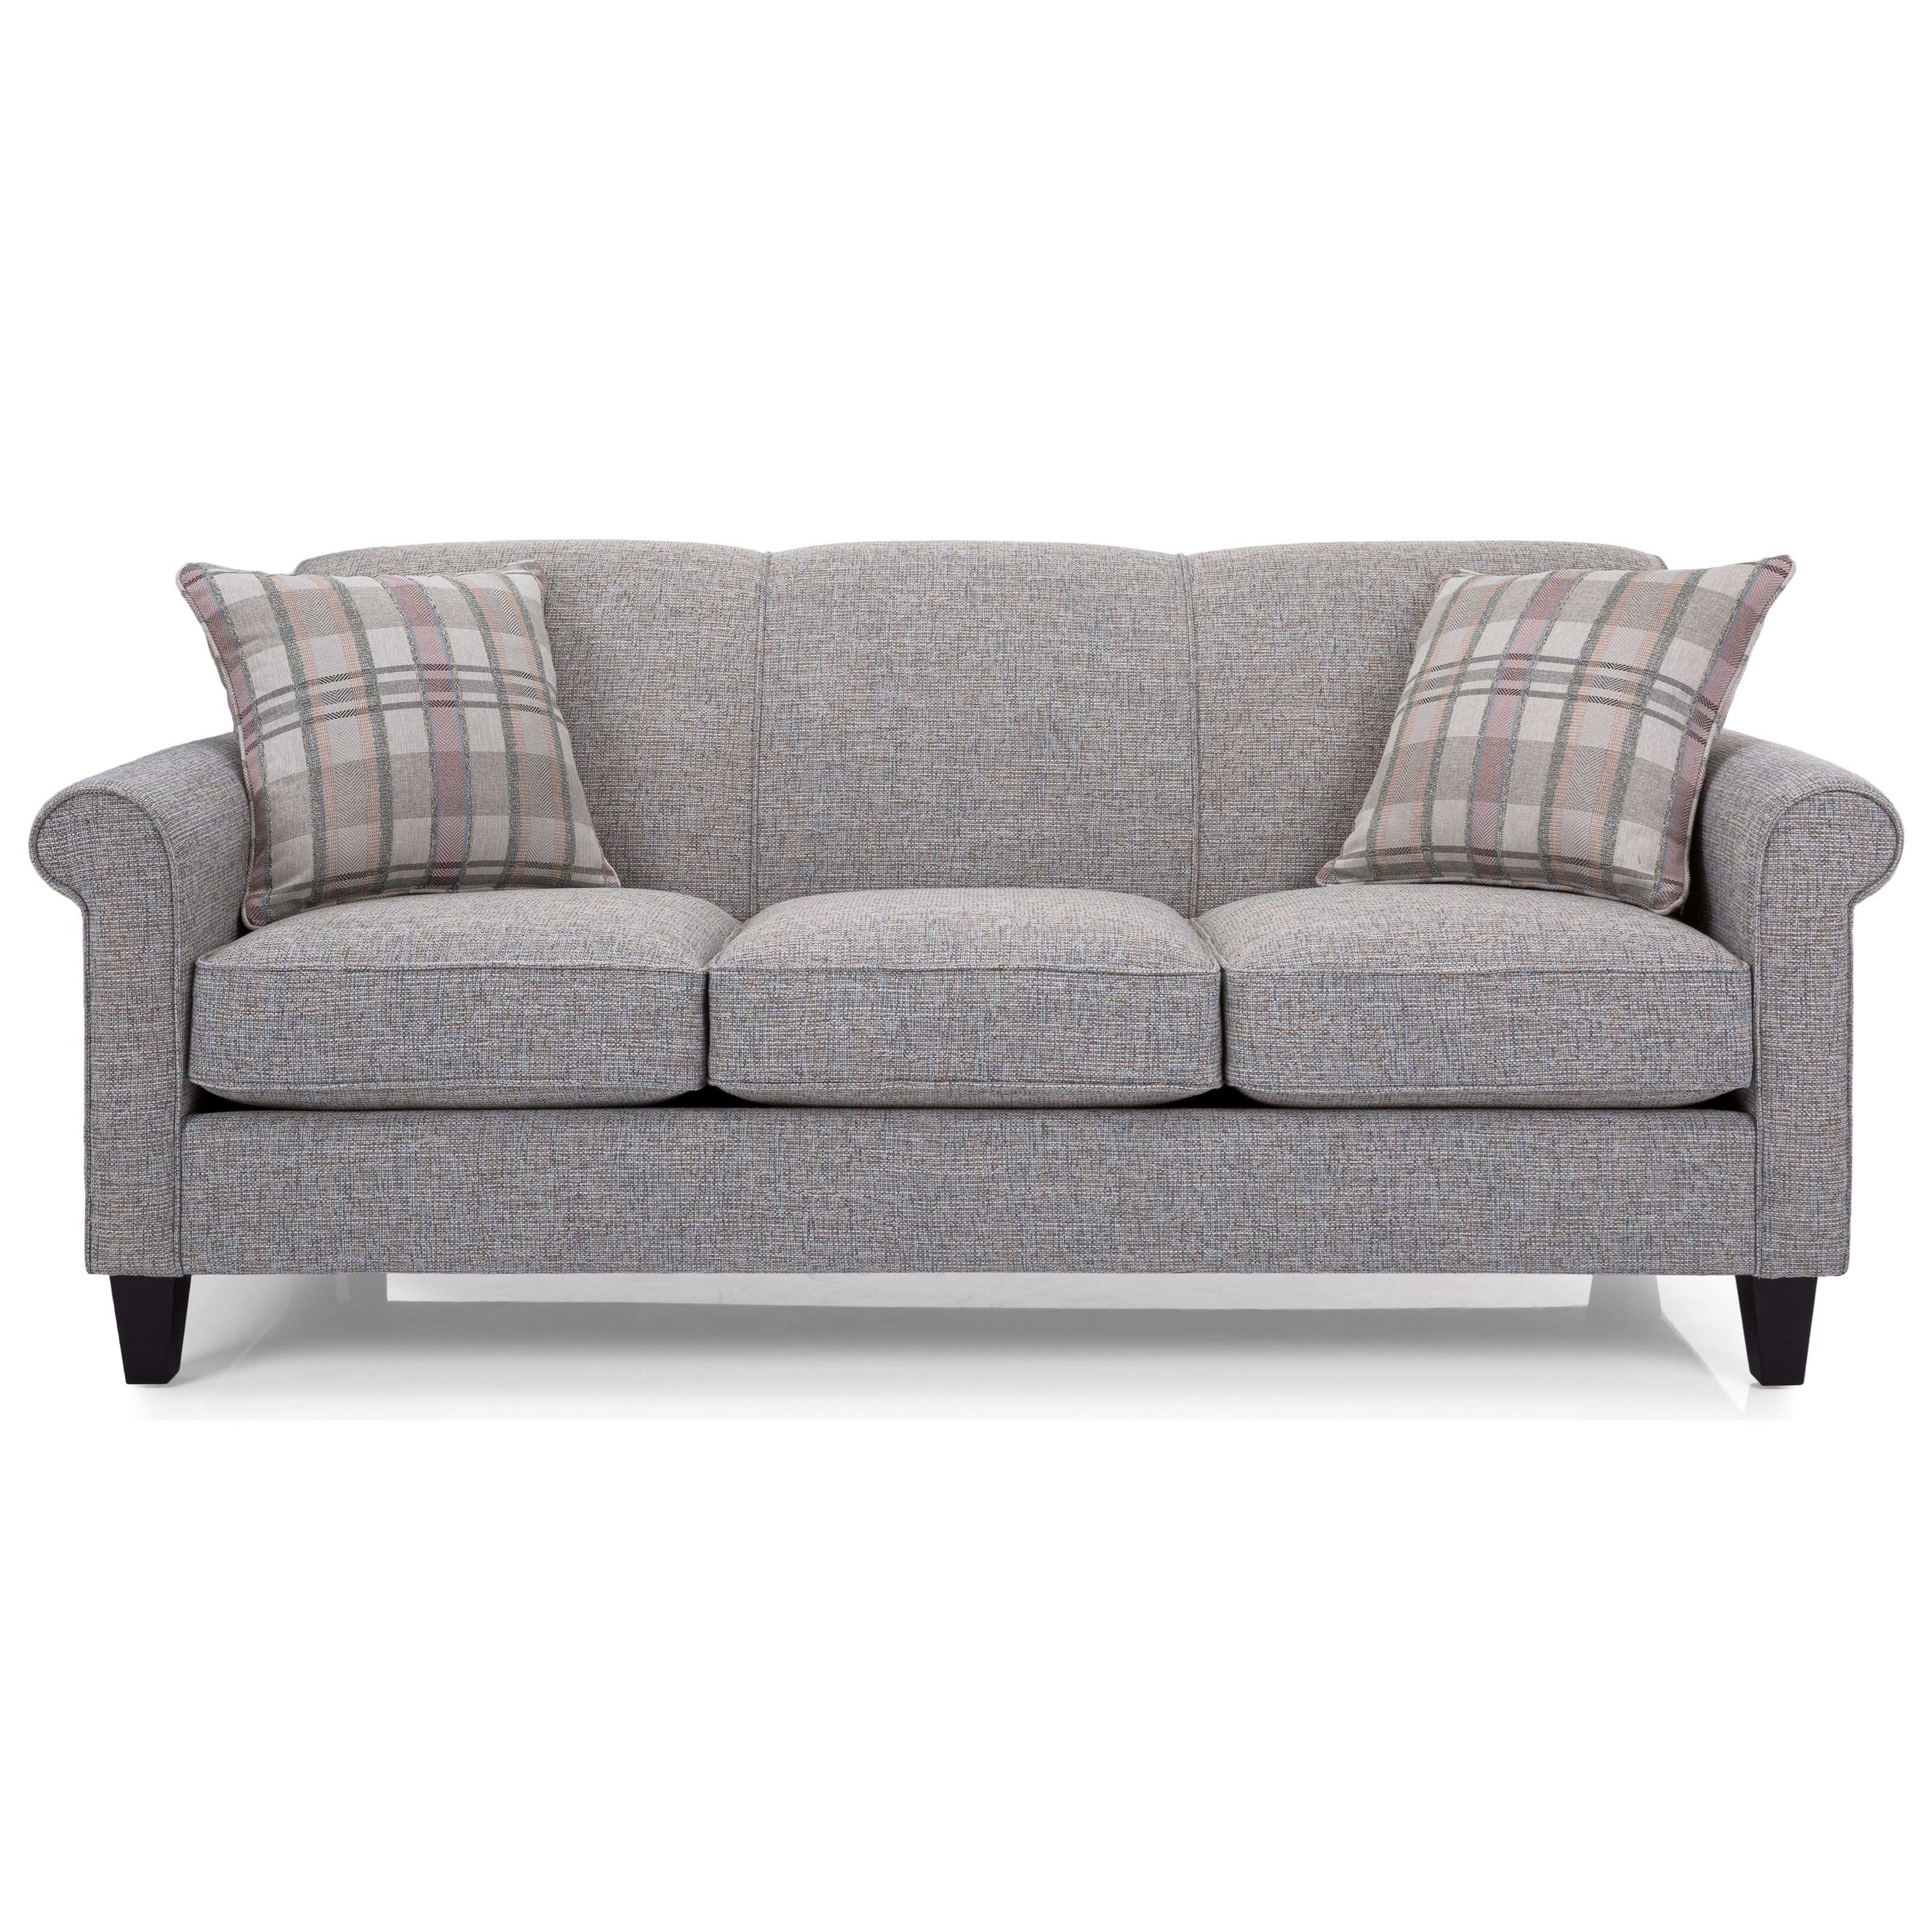 2963 Sofa by Decor-Rest at Johnny Janosik